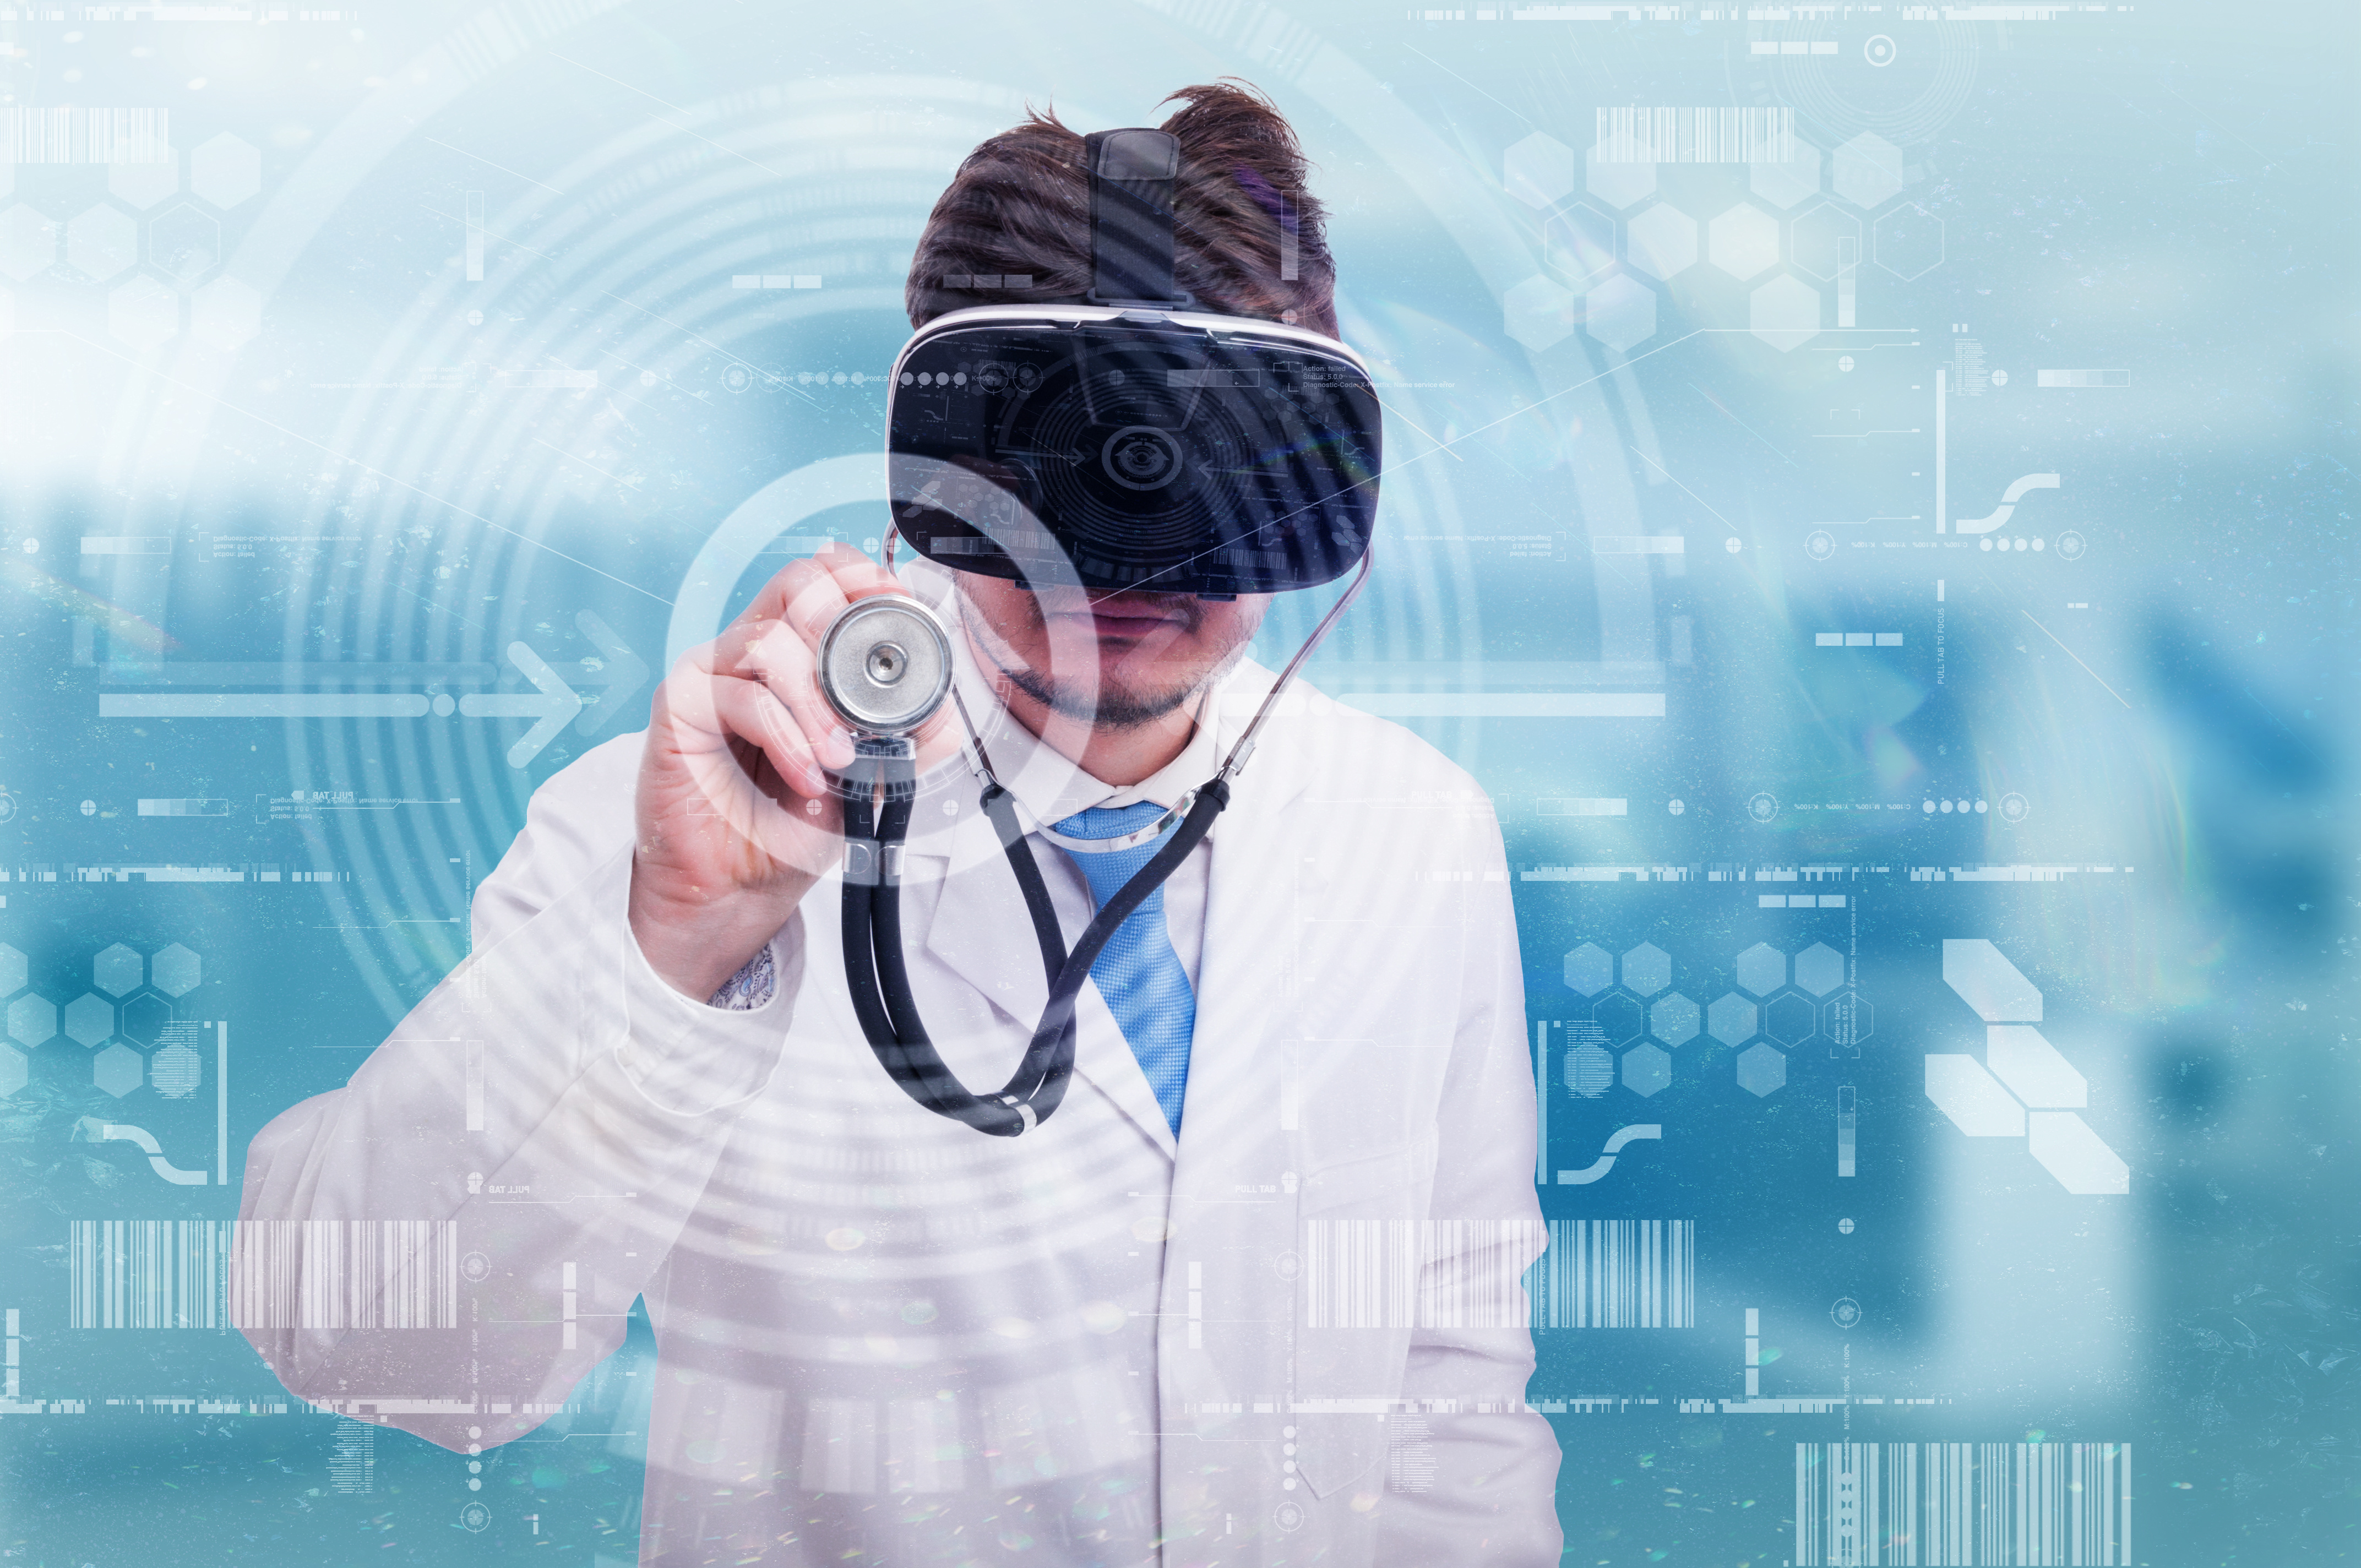 Doctor with modern glasses listening with stethoscope on futuristic screen